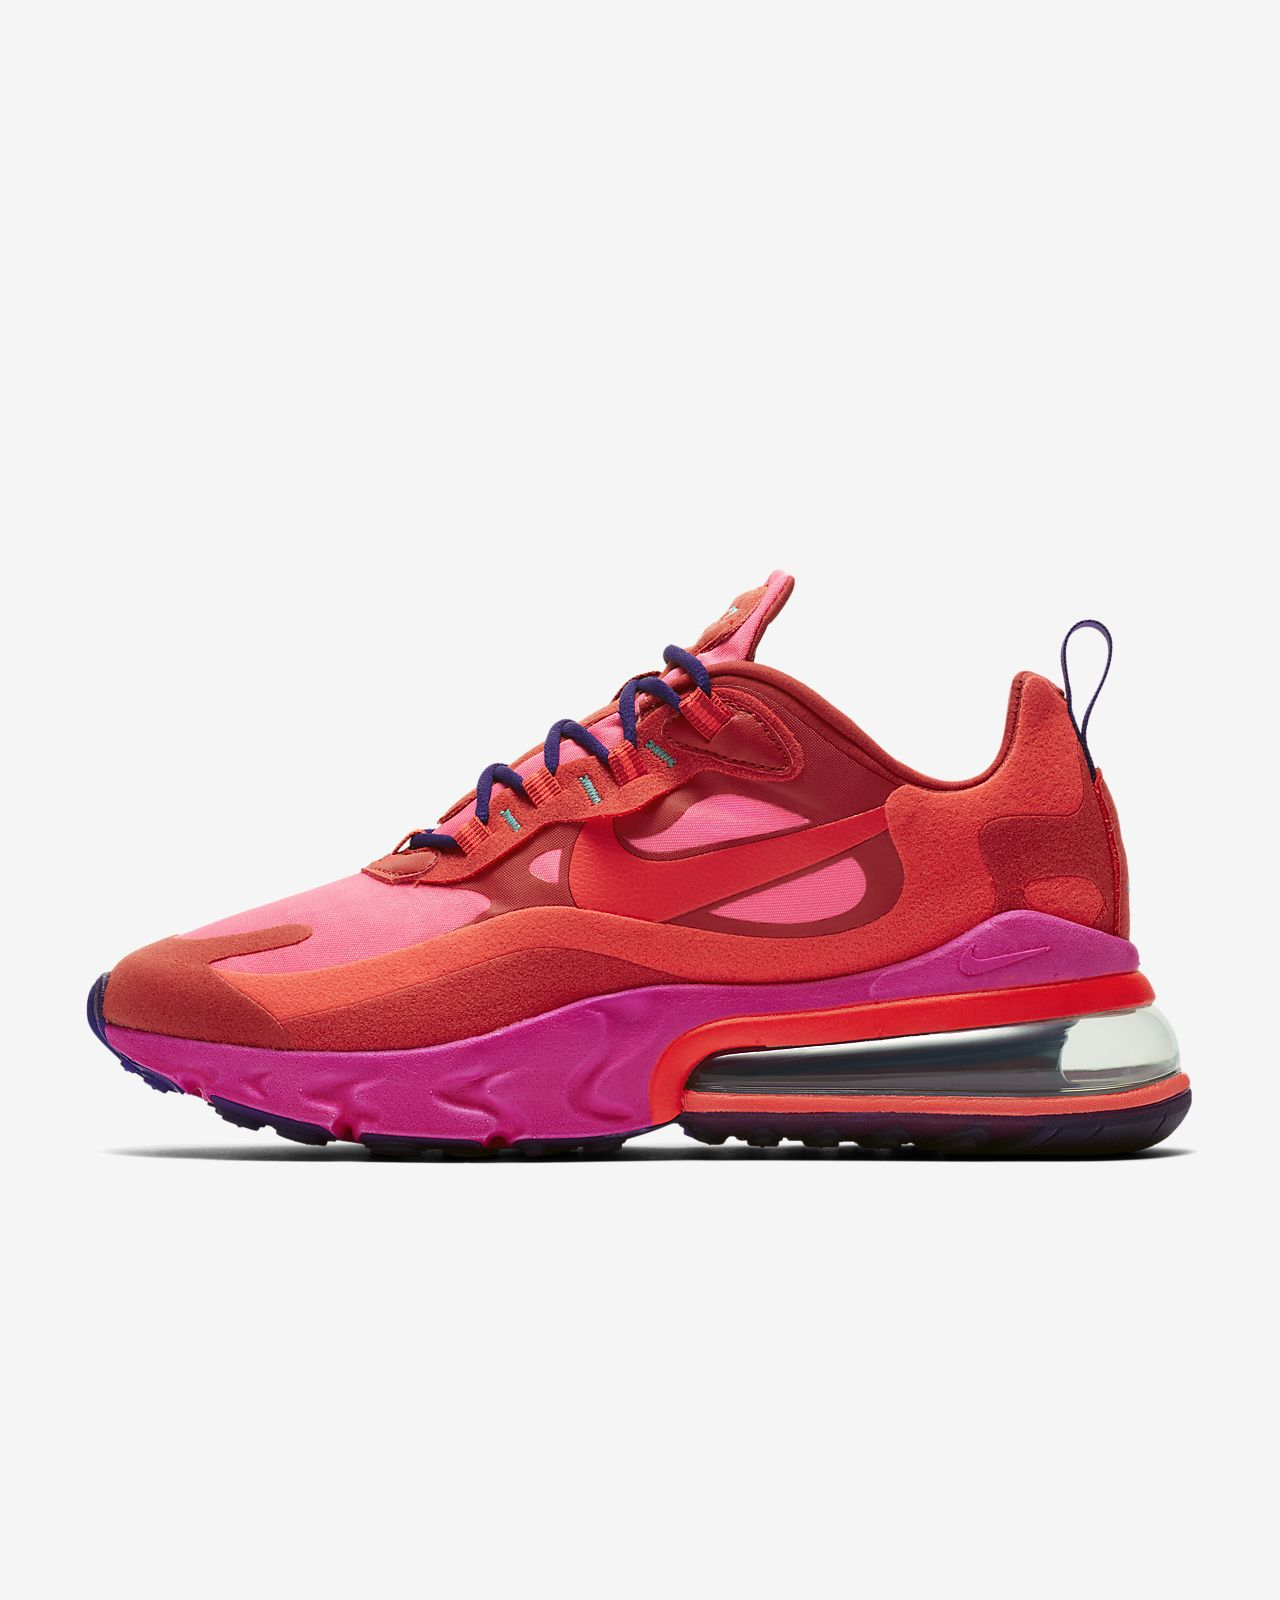 air max 270 react femme foot locker